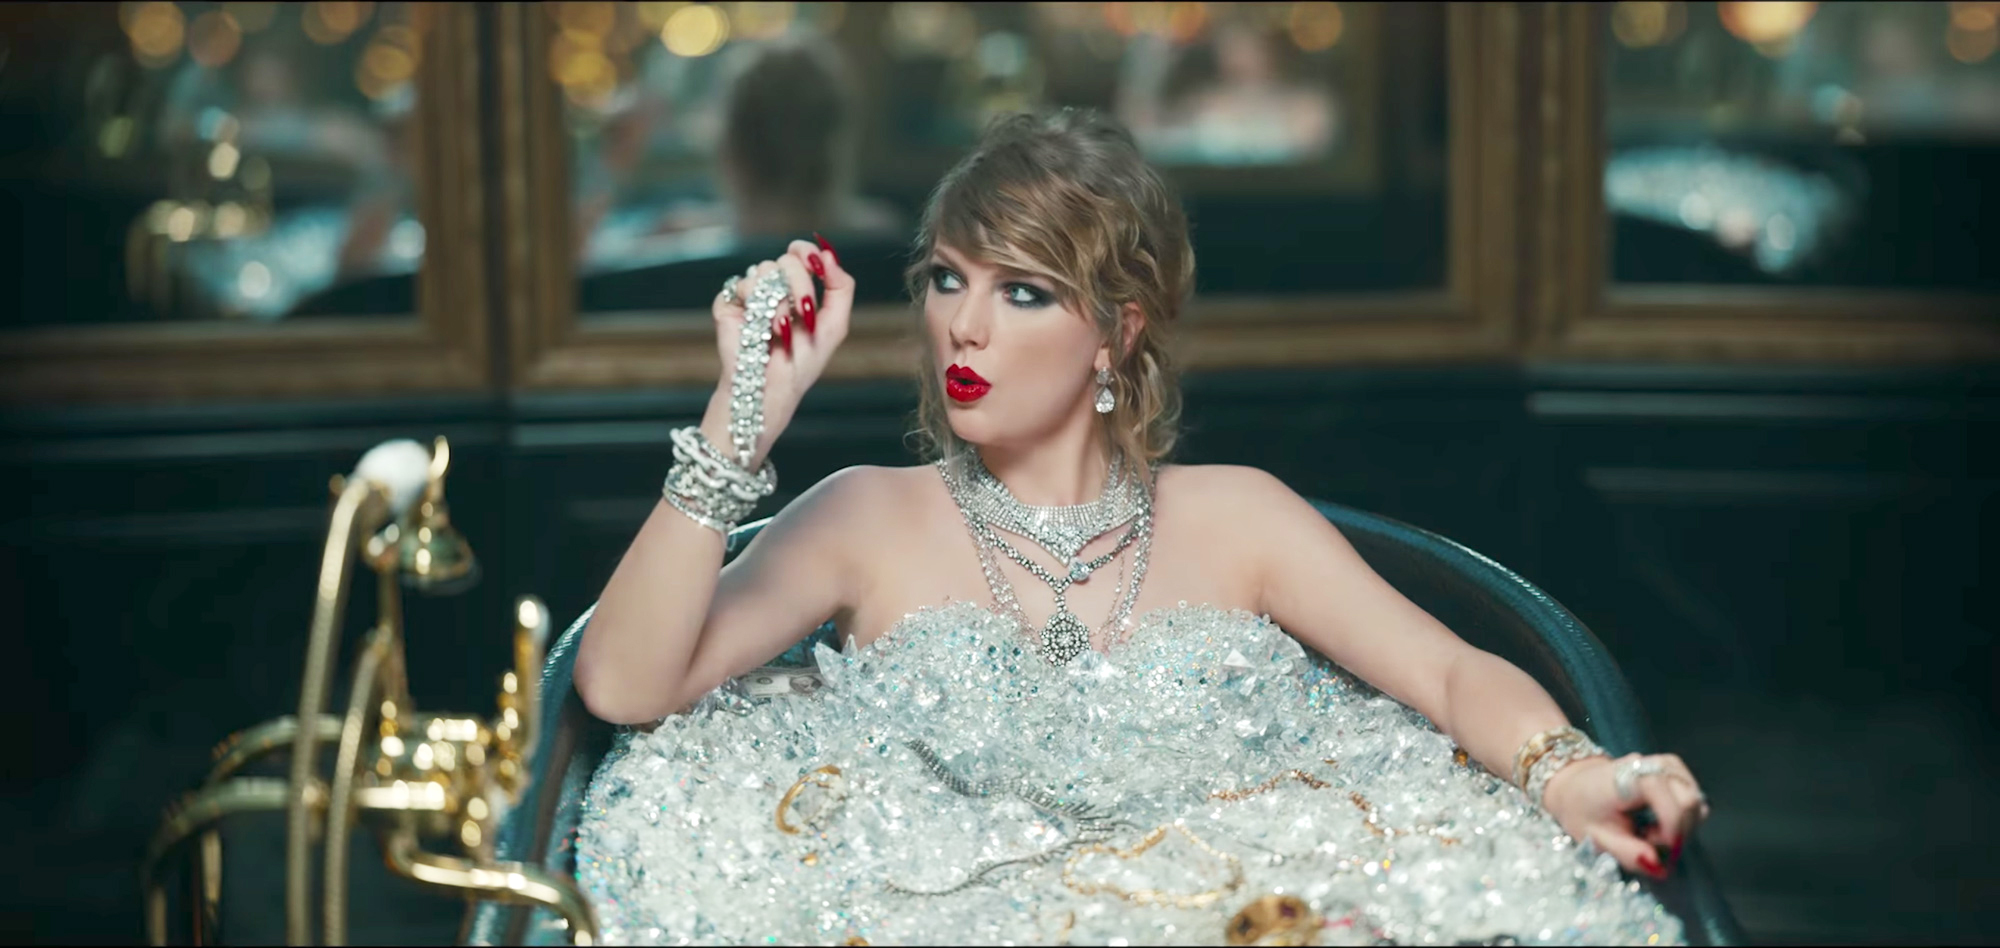 Taylor Swift LWYMMD Lead